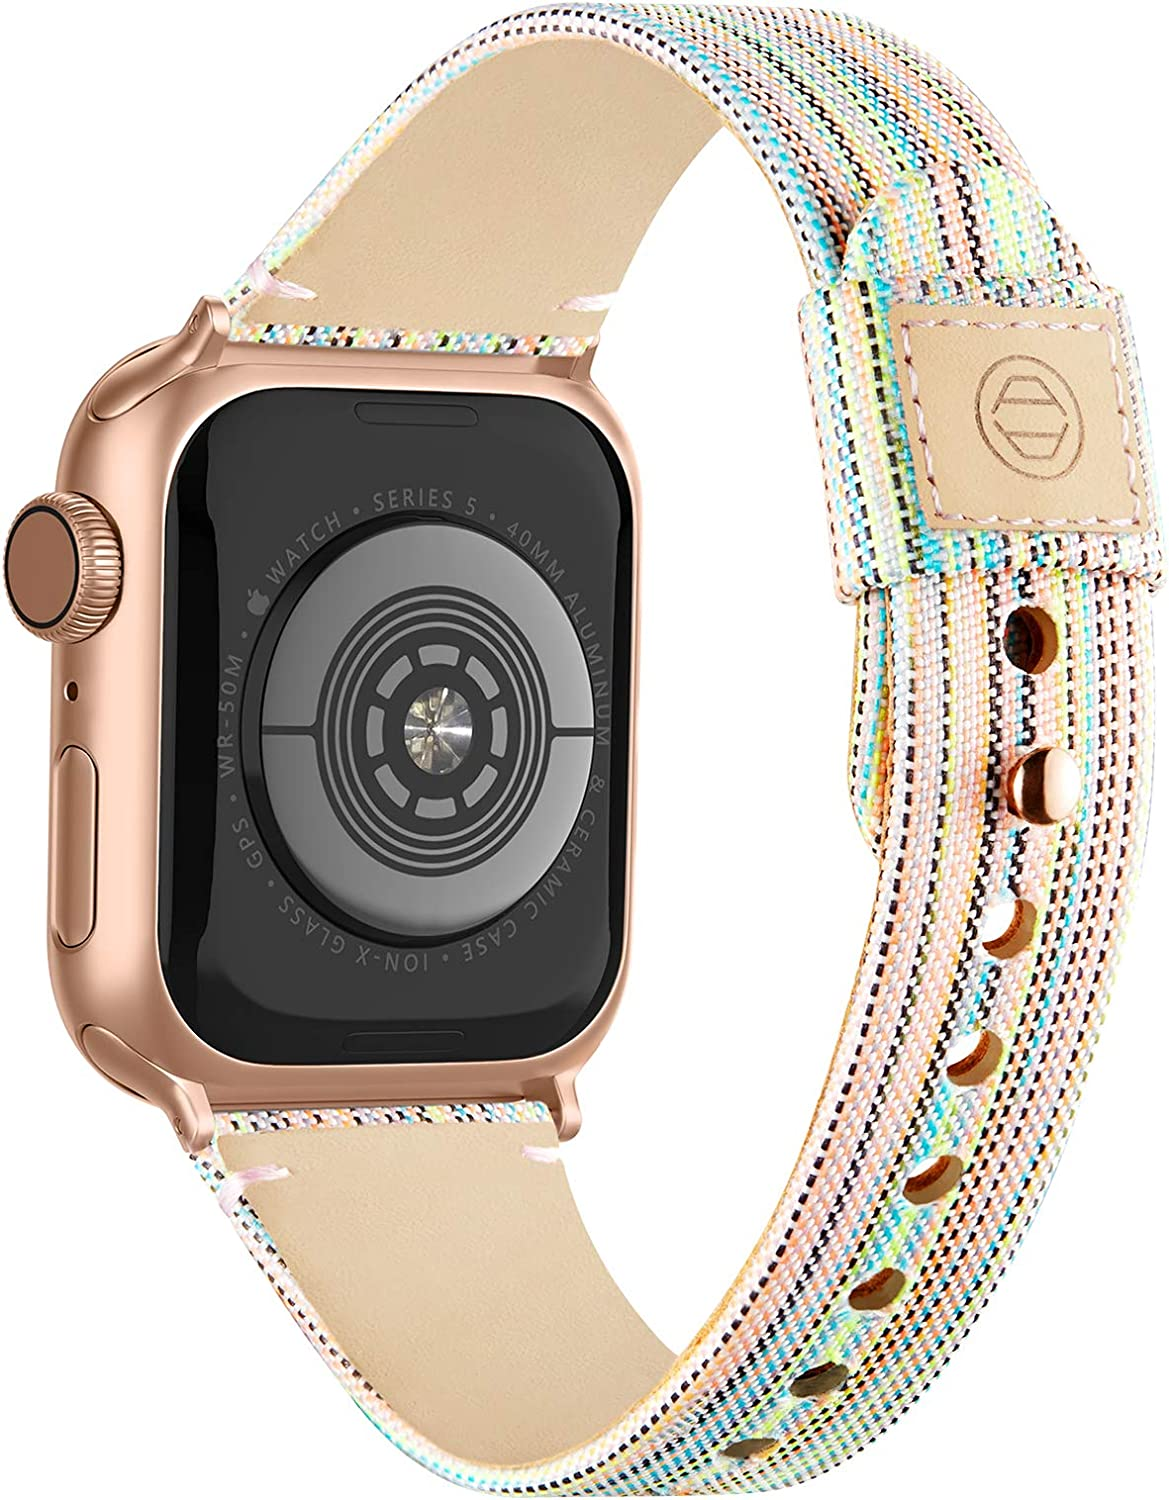 Compatible with Apple Watch Band 38mm 40mm 42mm 44mm for Women Men, Slim Fabric Canvas Band with Soft Leather Lining and Snap Button for Apple Watch Series 6/5/4/3/2/1 SE, Rainbow 38/40mm